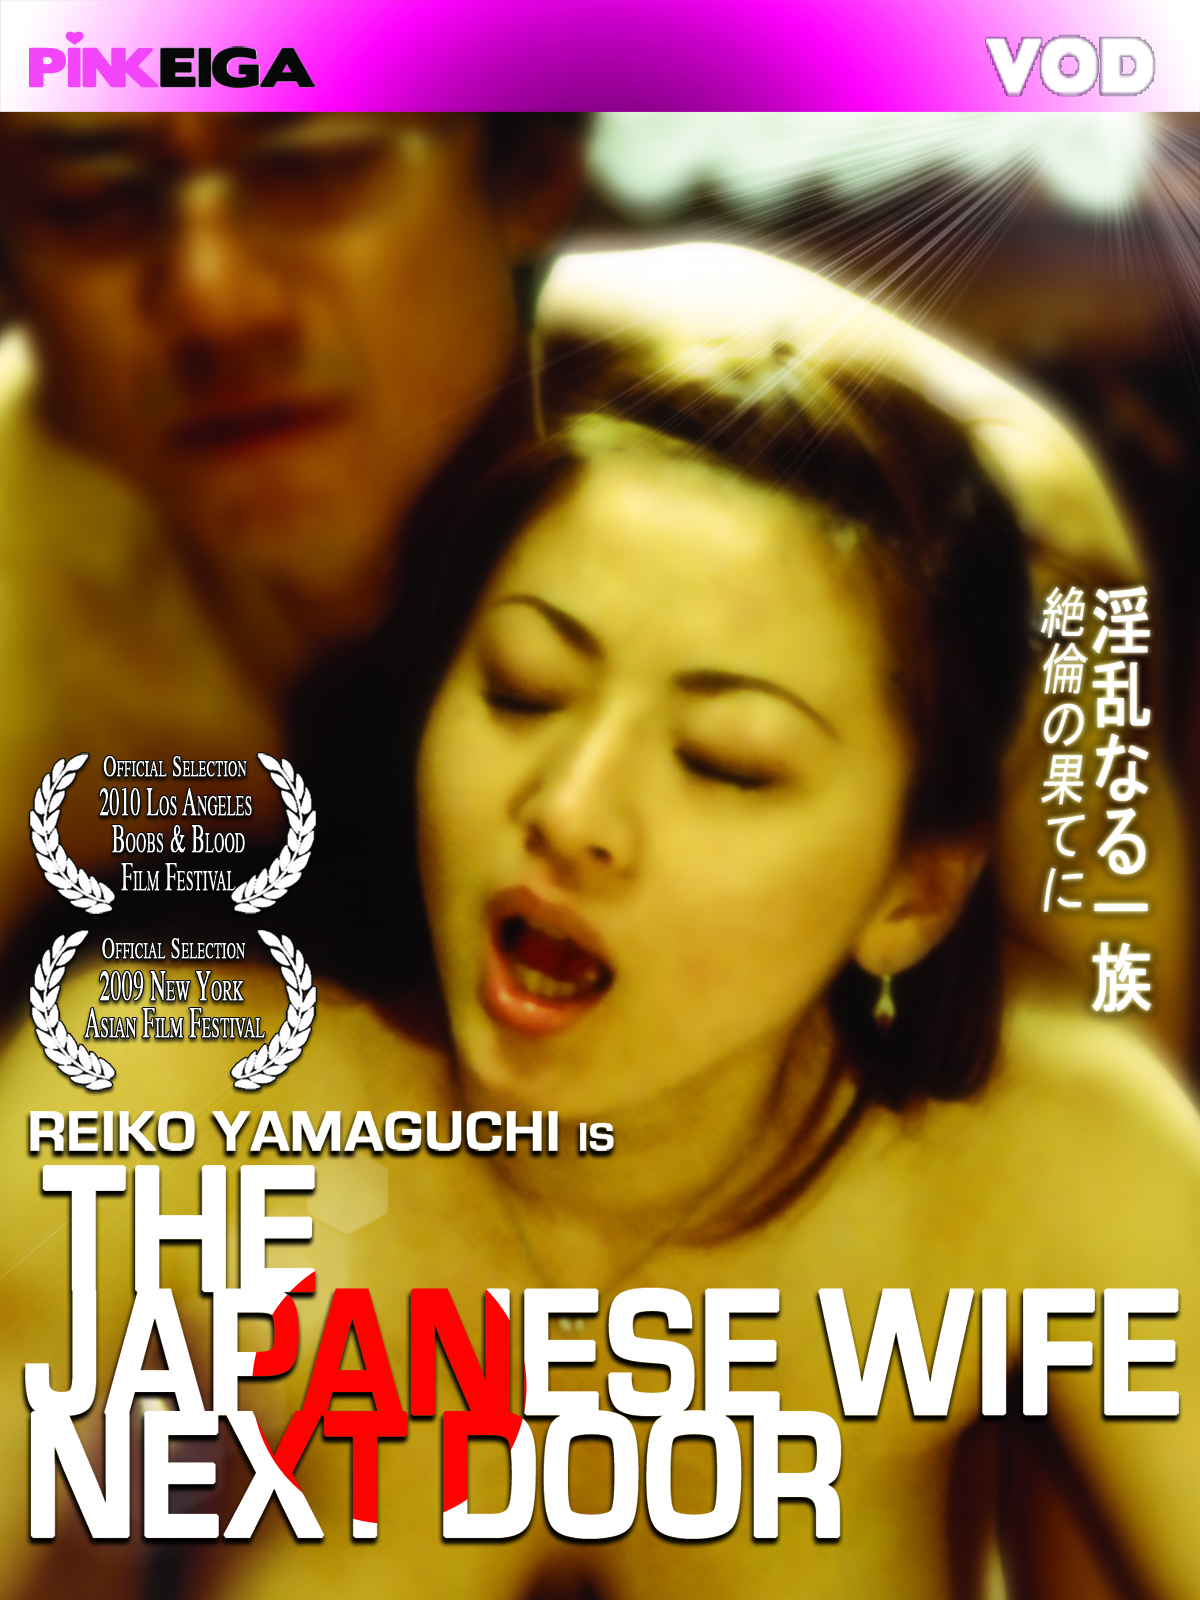 The Japanese Wife Next Door: Part 1 -HD- DOWNLOAD TO OWN